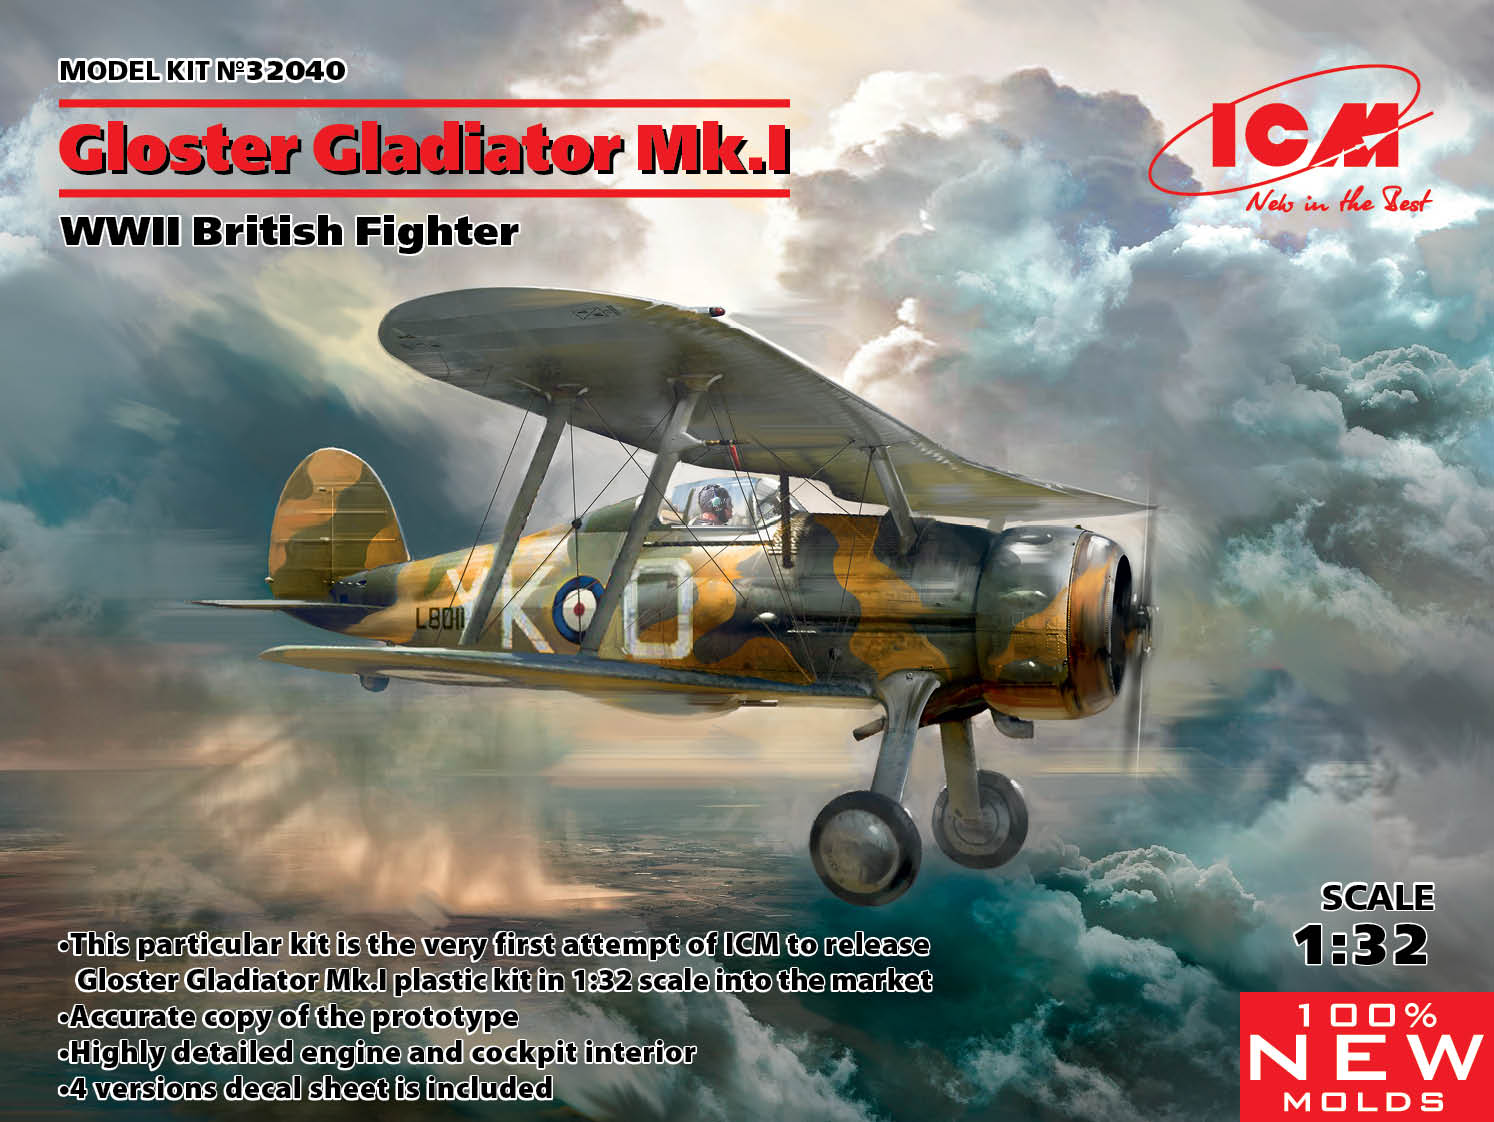 ICM Gloster Gladiator Mk.I, WWII British Fighter (100% new molds)